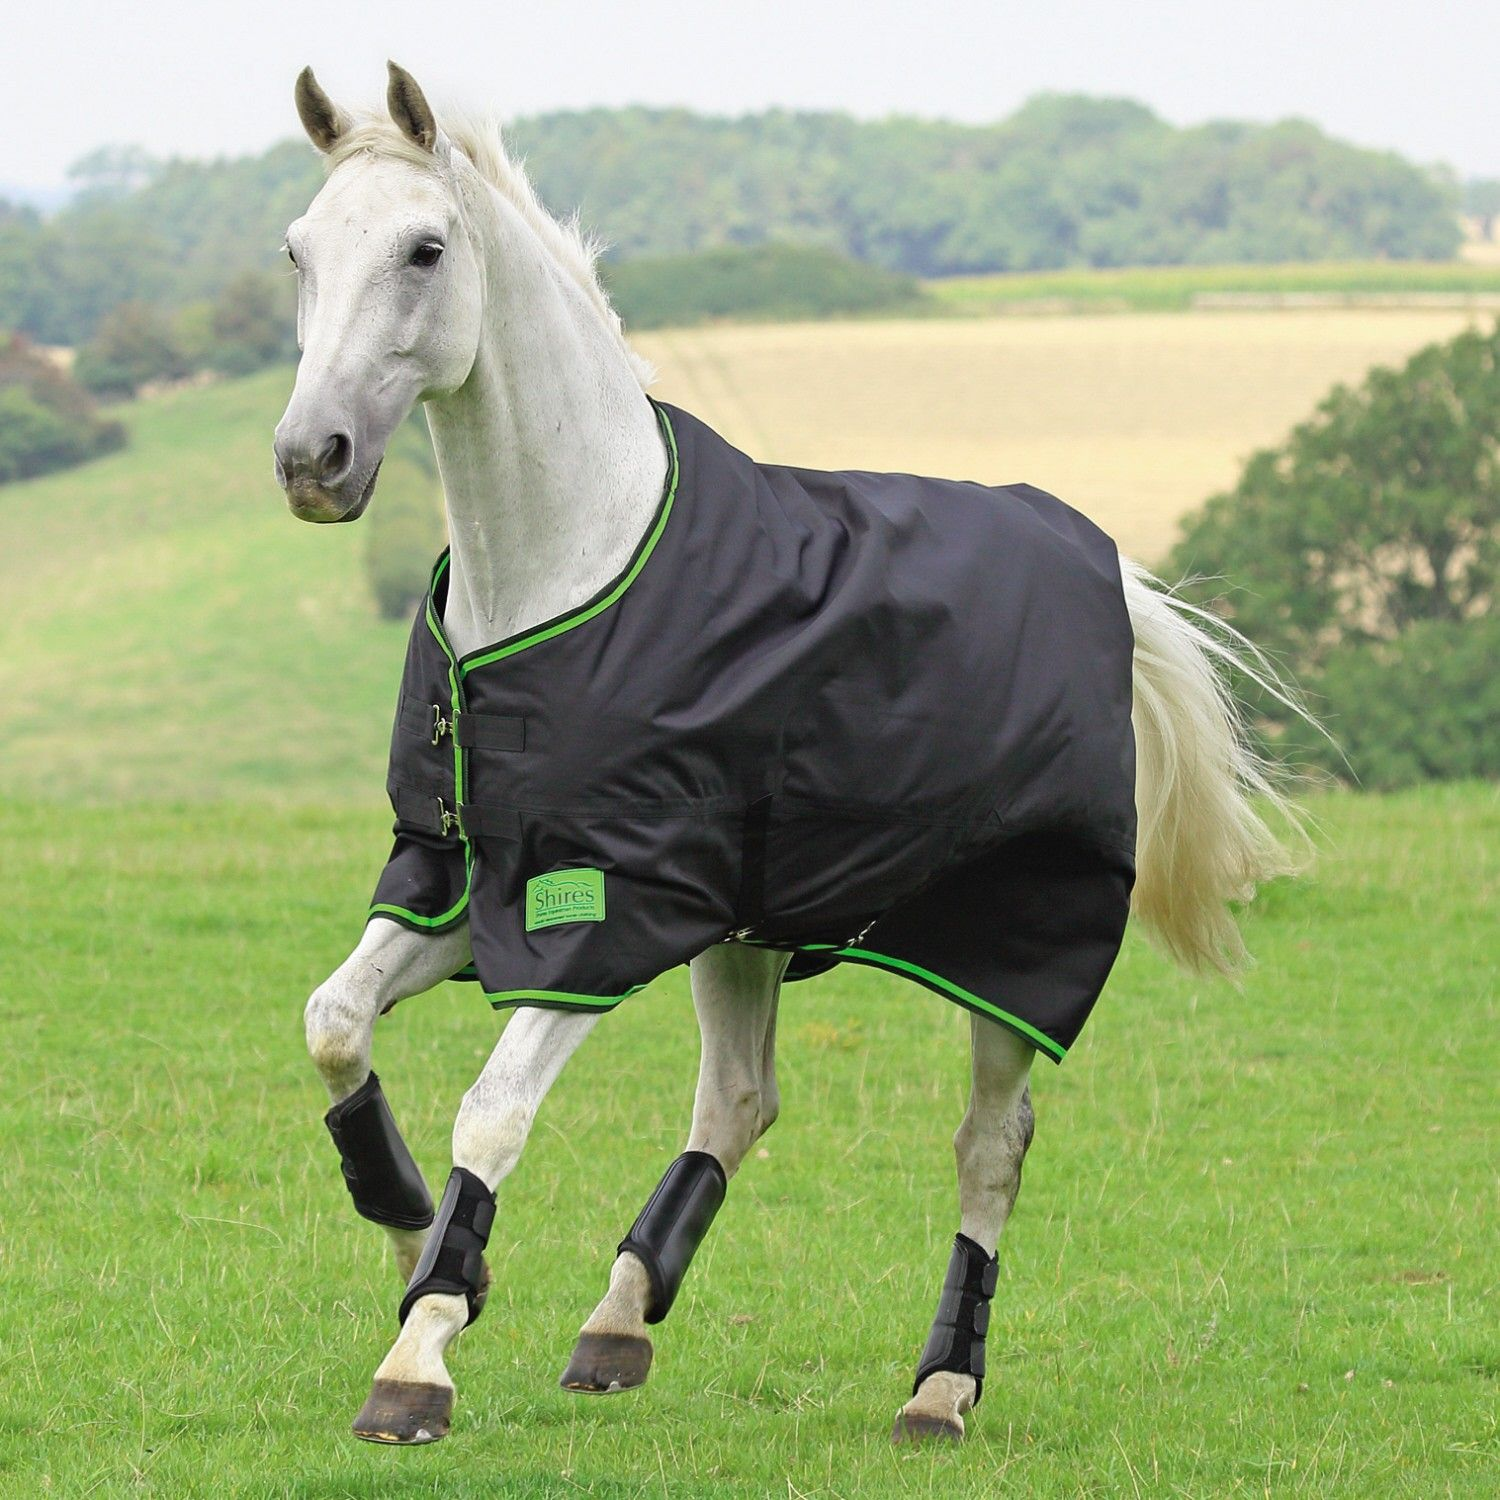 Shires Tempest Original Light Medium Turnout Rugs 100g Suitable Now Because The